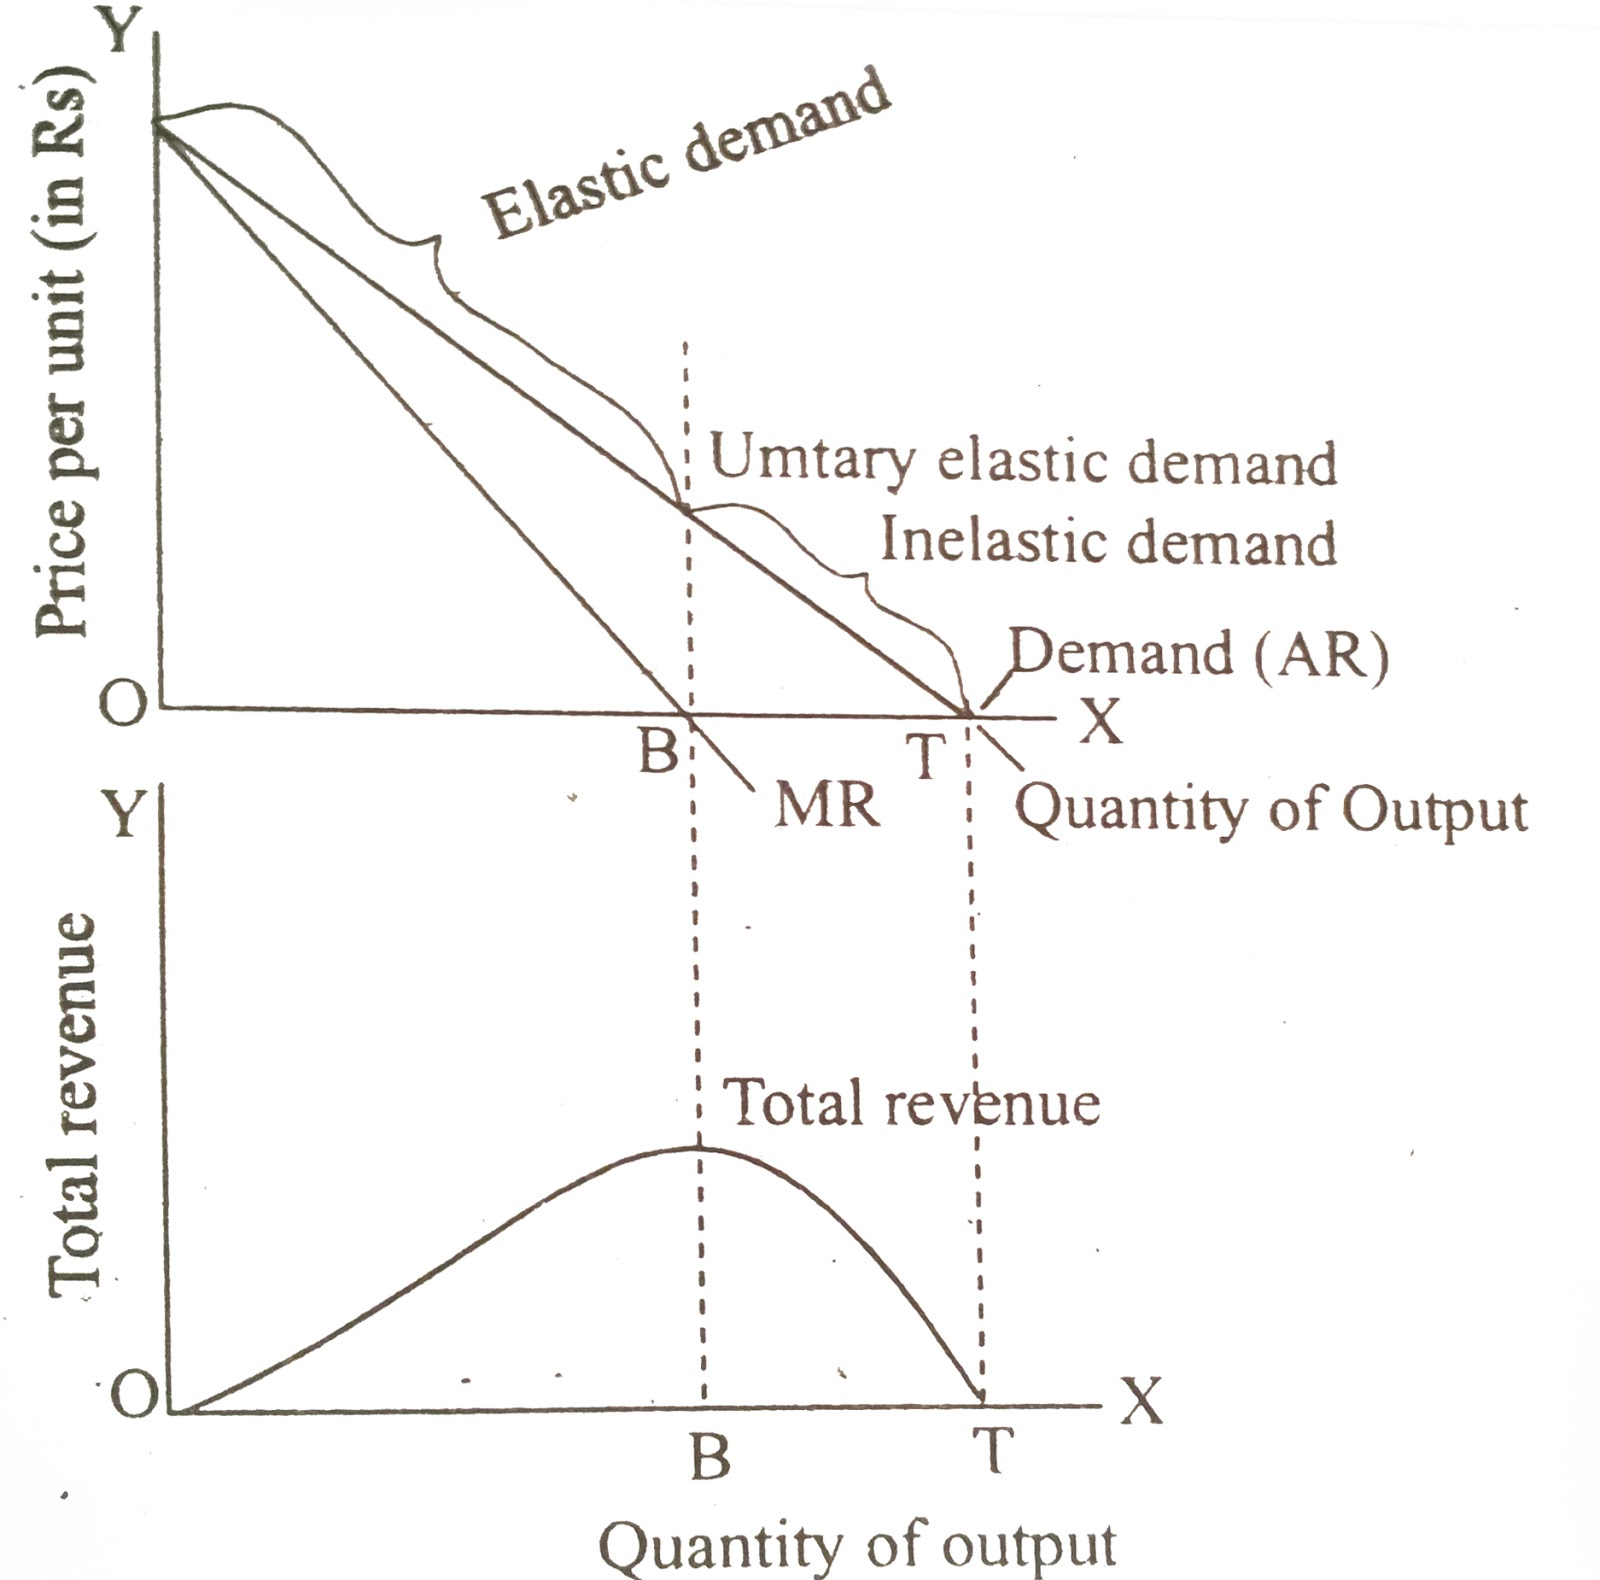 marginal revenue and its relationship with total